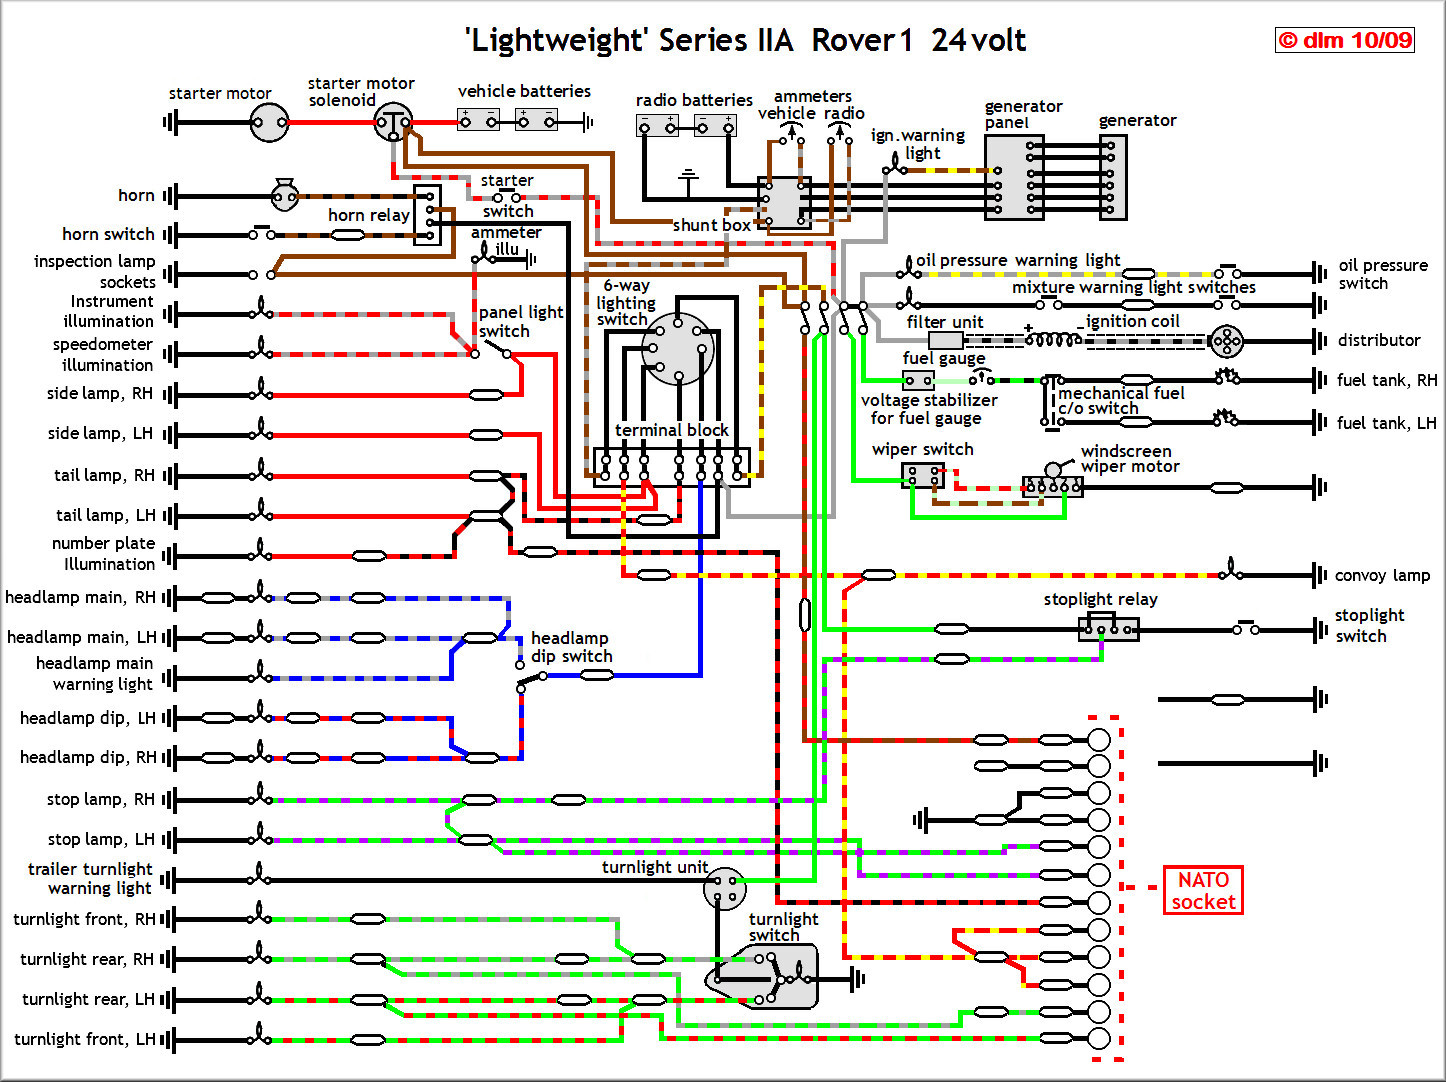 ... Wiring Diagram, · land rover lightweight rh land rover lightweight co uk